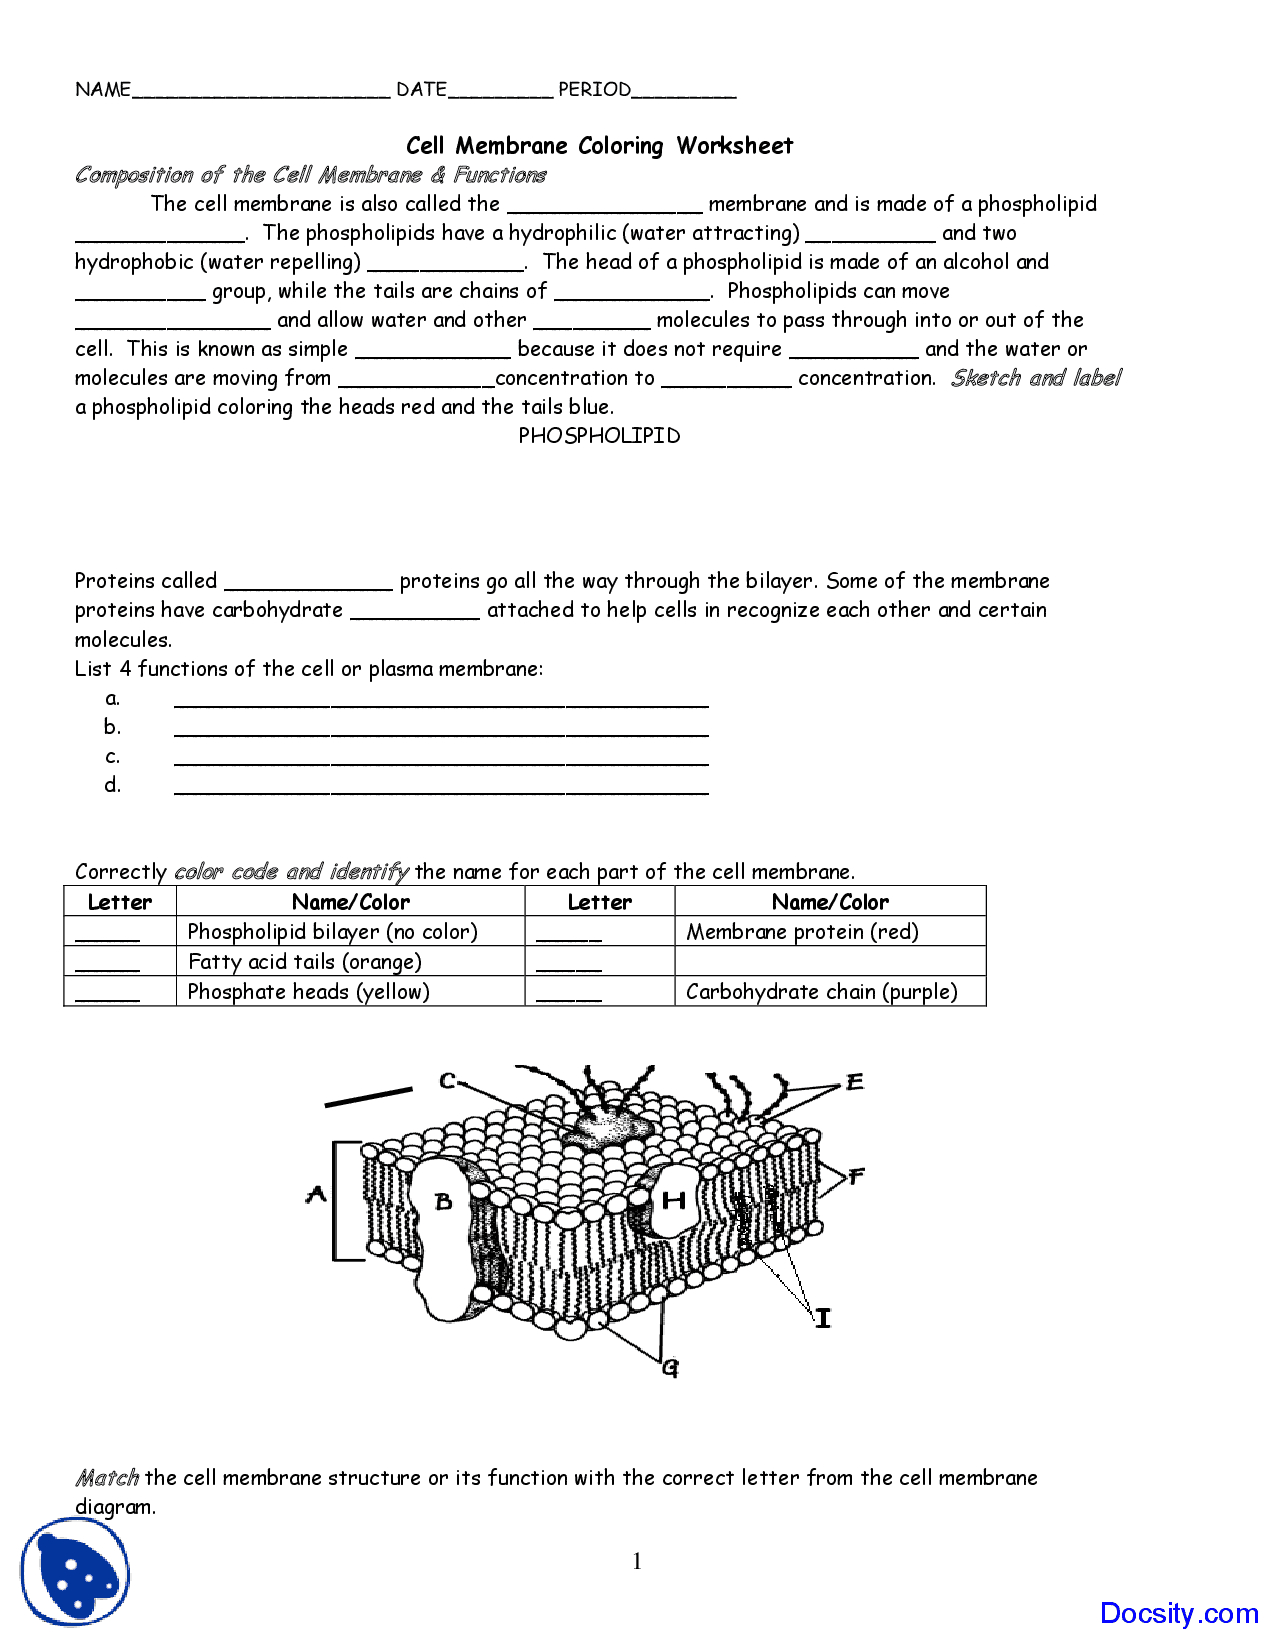 Cell Membrane Coloring  Application Of Biology  Assignment  Docsity And Cell Membrane Coloring Worksheet Answers